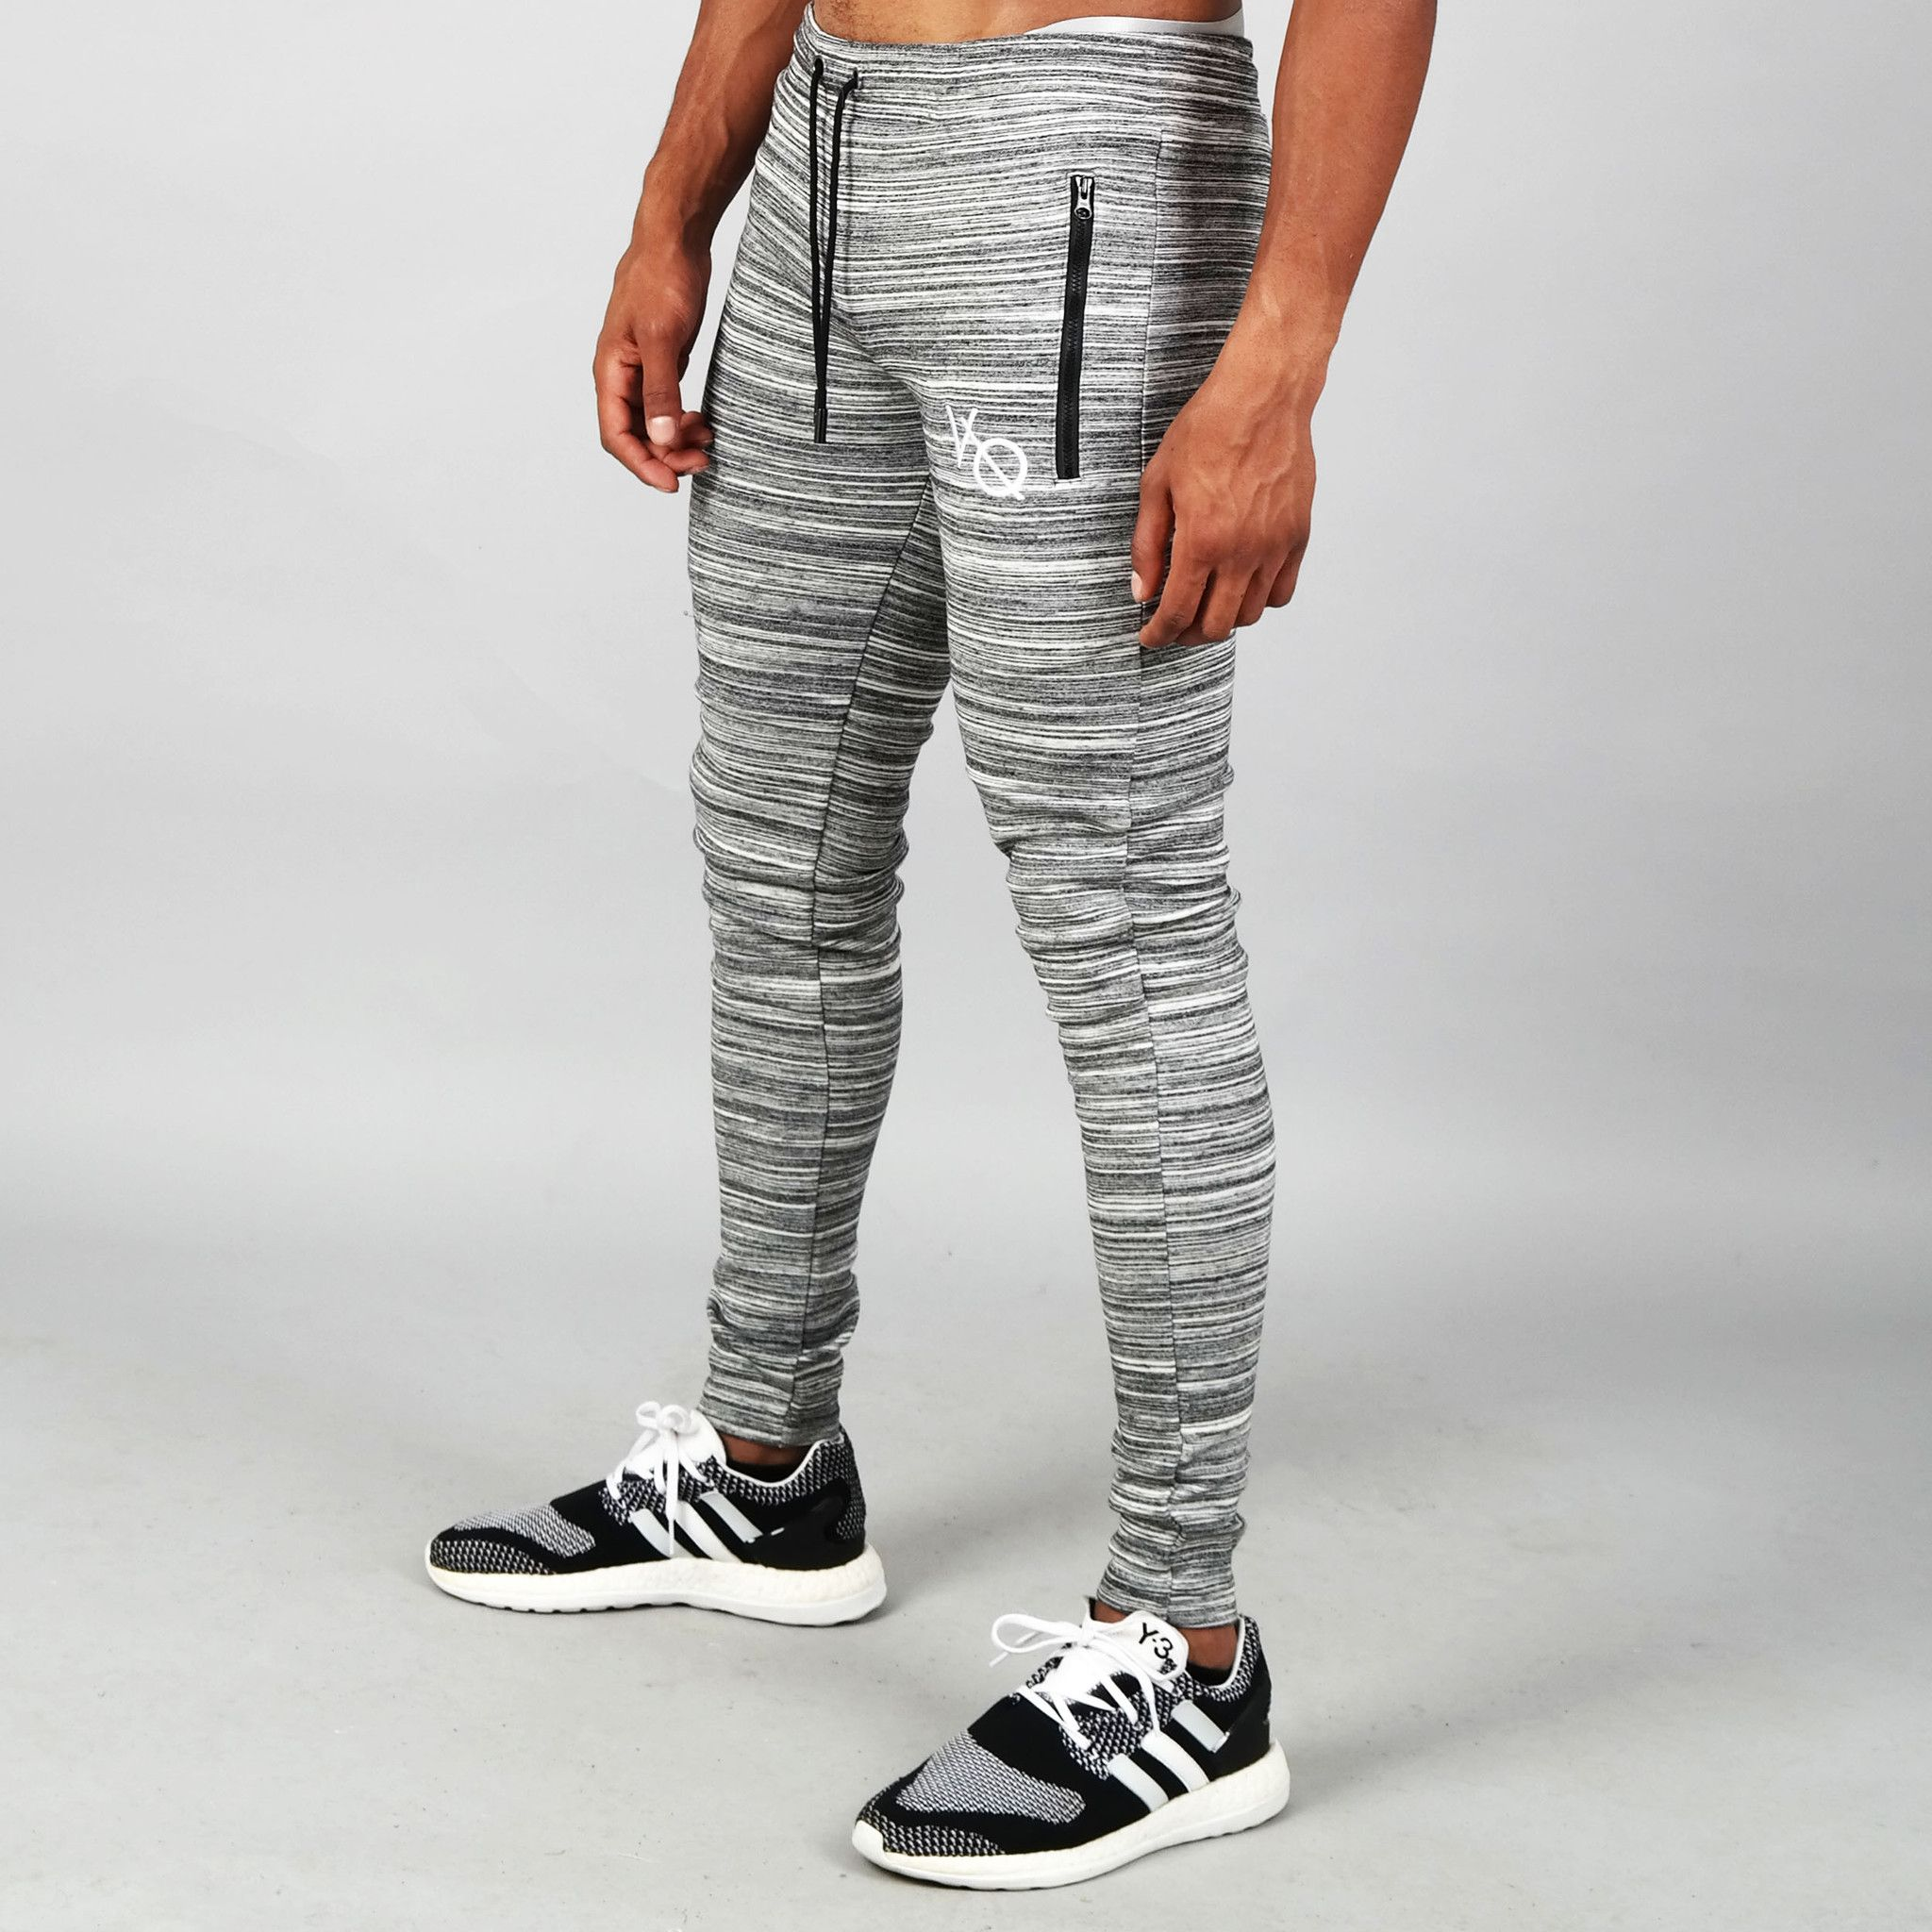 2e17bf9bc Vanquish Slate Grey Flux Tapered Sweatpants from Vanquish Fitness ...